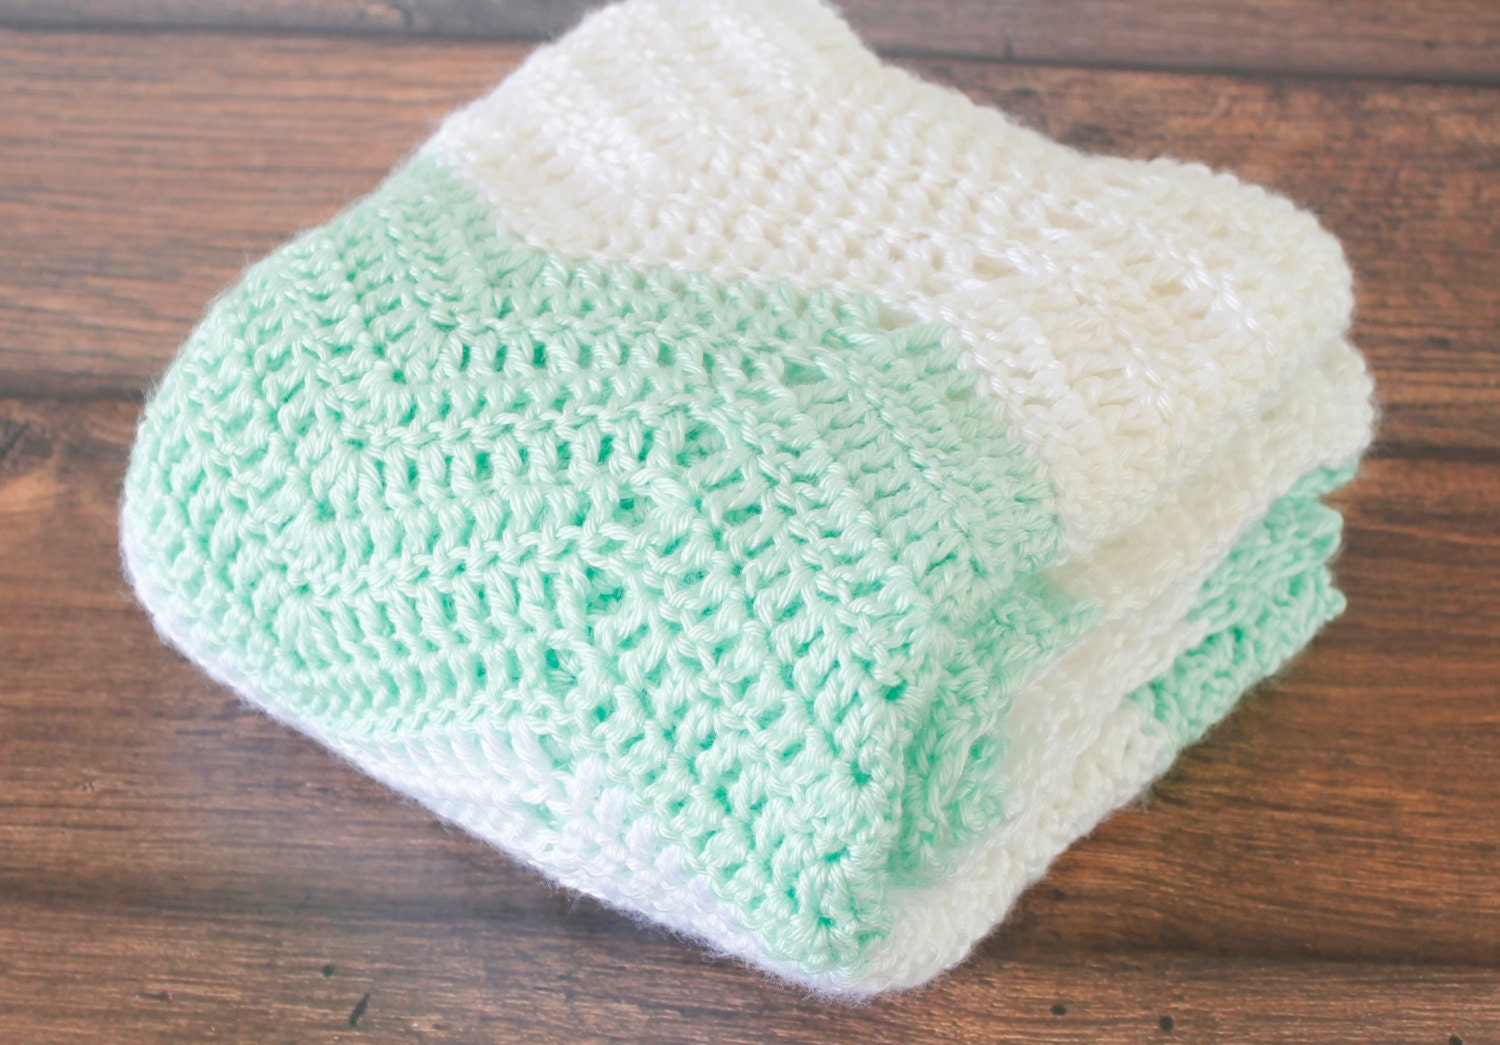 Crochet Striped Chevron Baby Blanket Zig Zag Baby Blanket